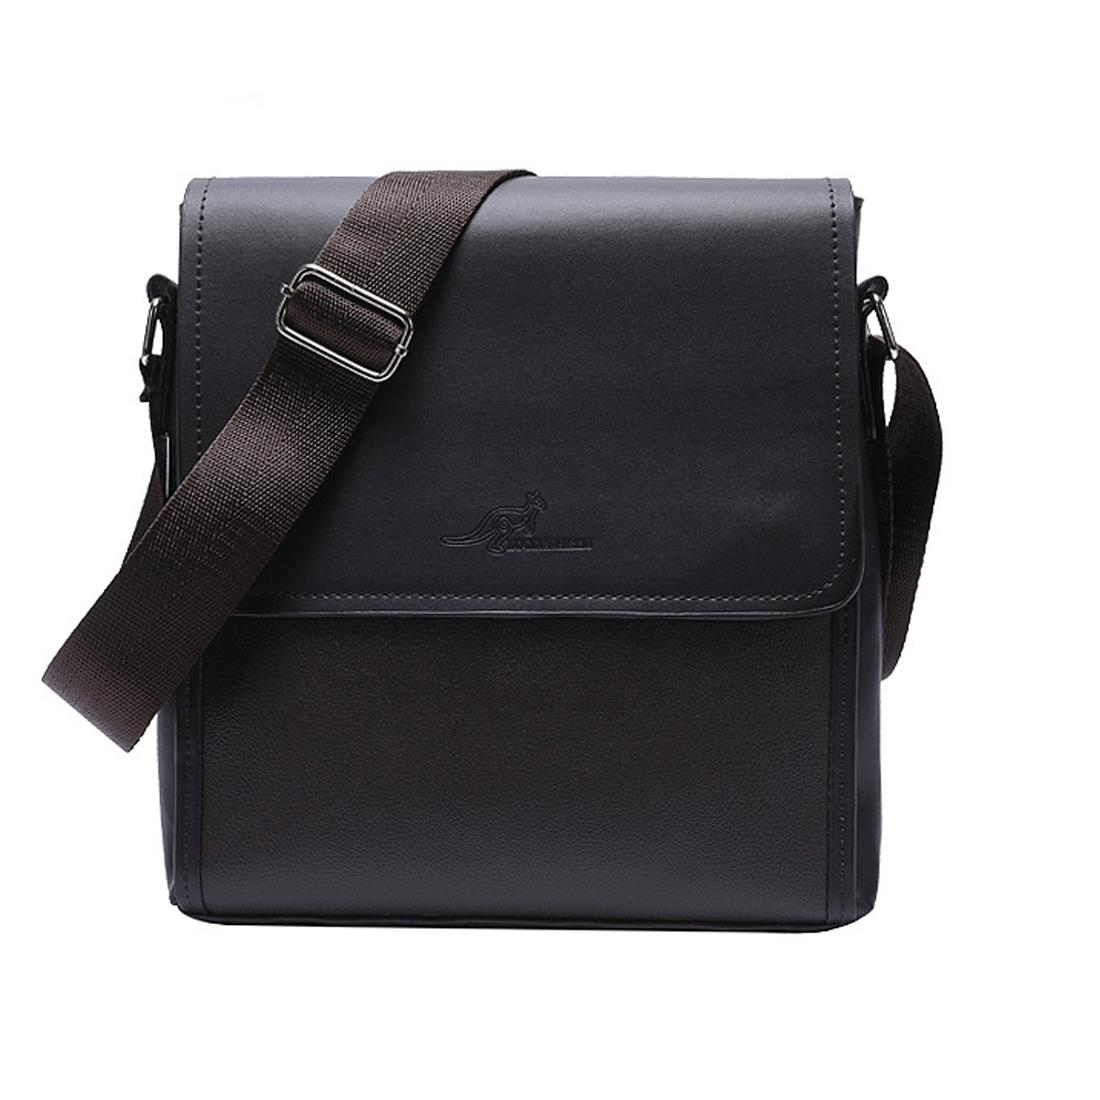 a4312142c7b3 Messenger Bags for sale - Messenger Bags for Men online brands ...